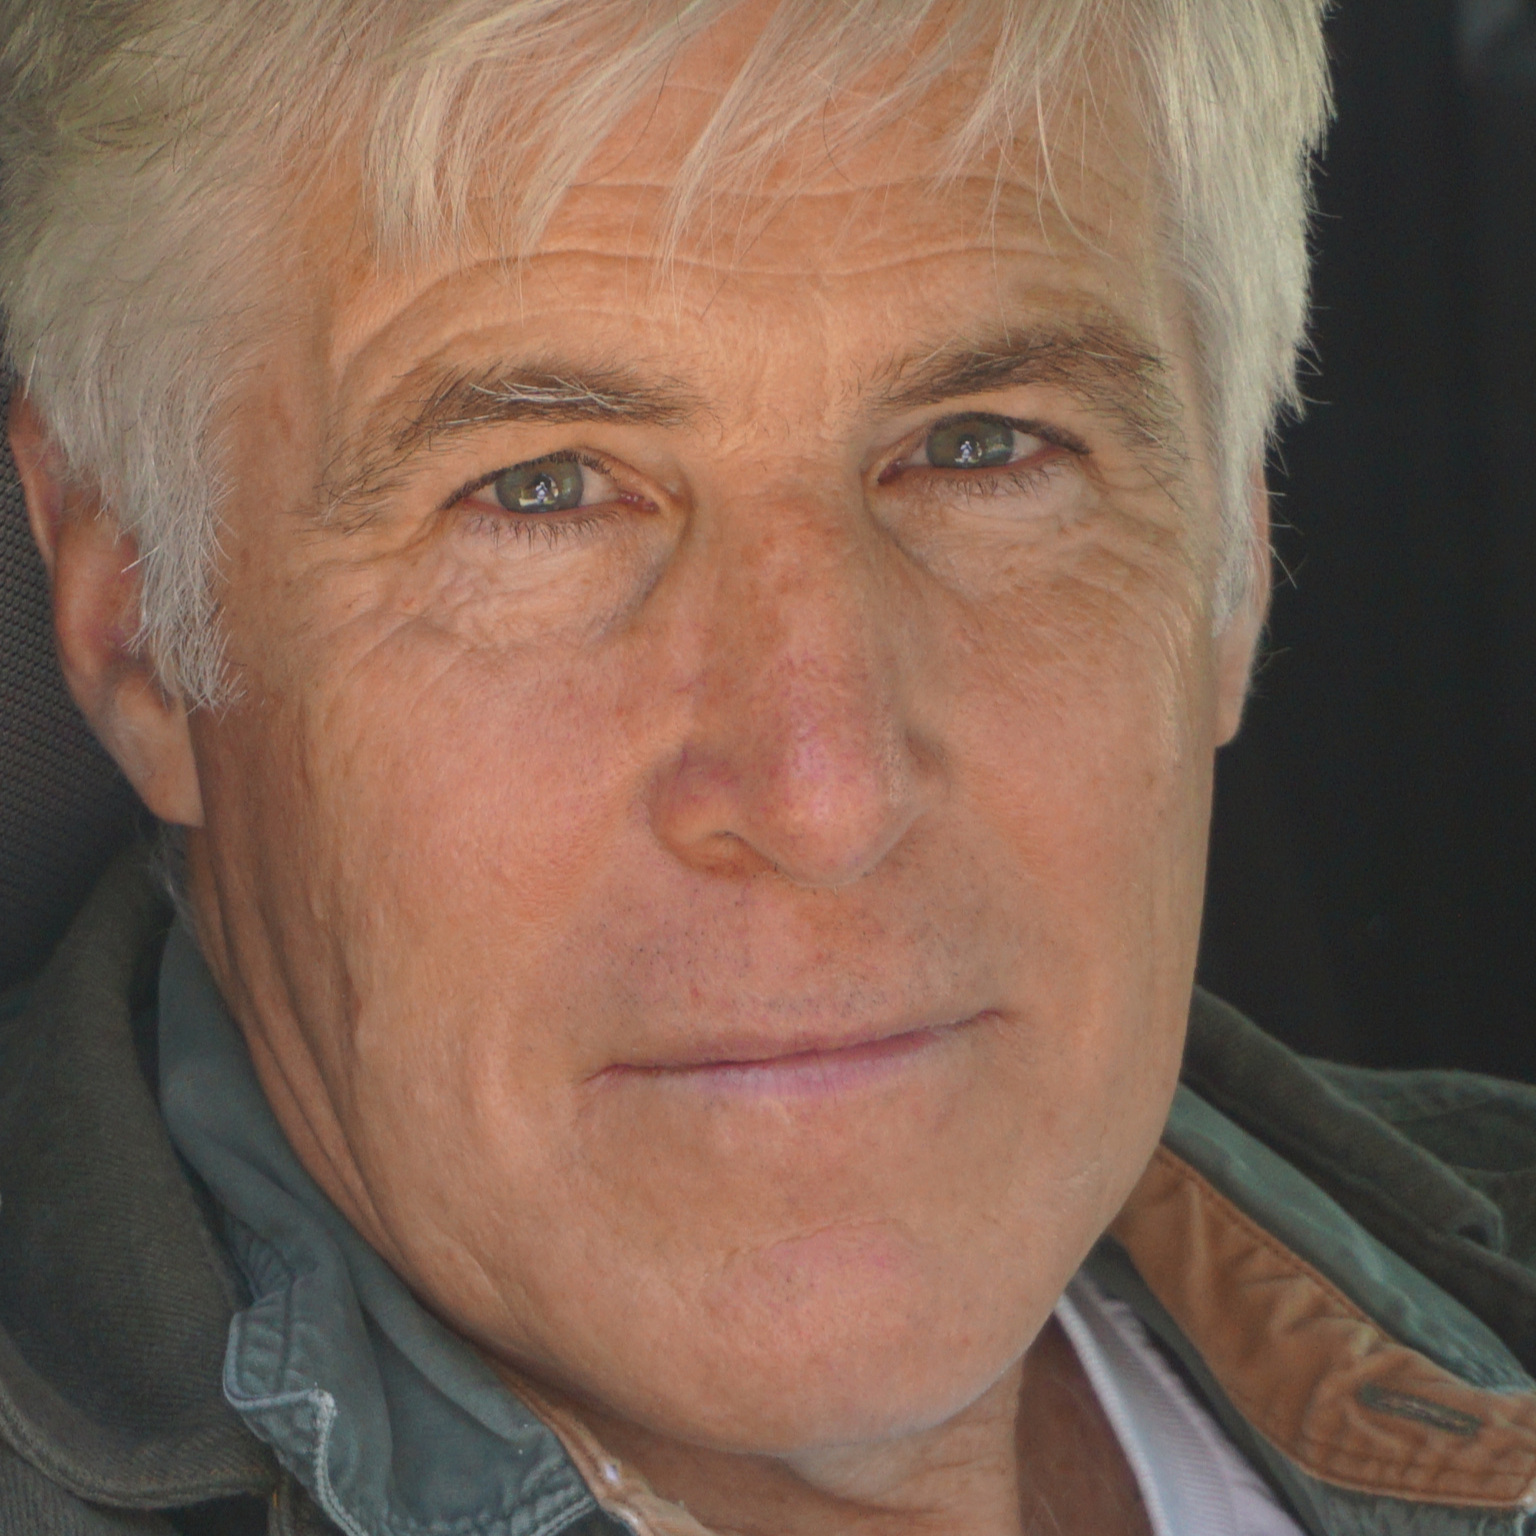 Tony Cronin (Prospero) - Tony is thrilled to be able to play the great magician Prospero in The Tempest. Tony works professionally in the Entertainment industry as an actor and writer. He is a regular performer at LA Opera, has worked on stage in New York City, London, and Edinburgh.